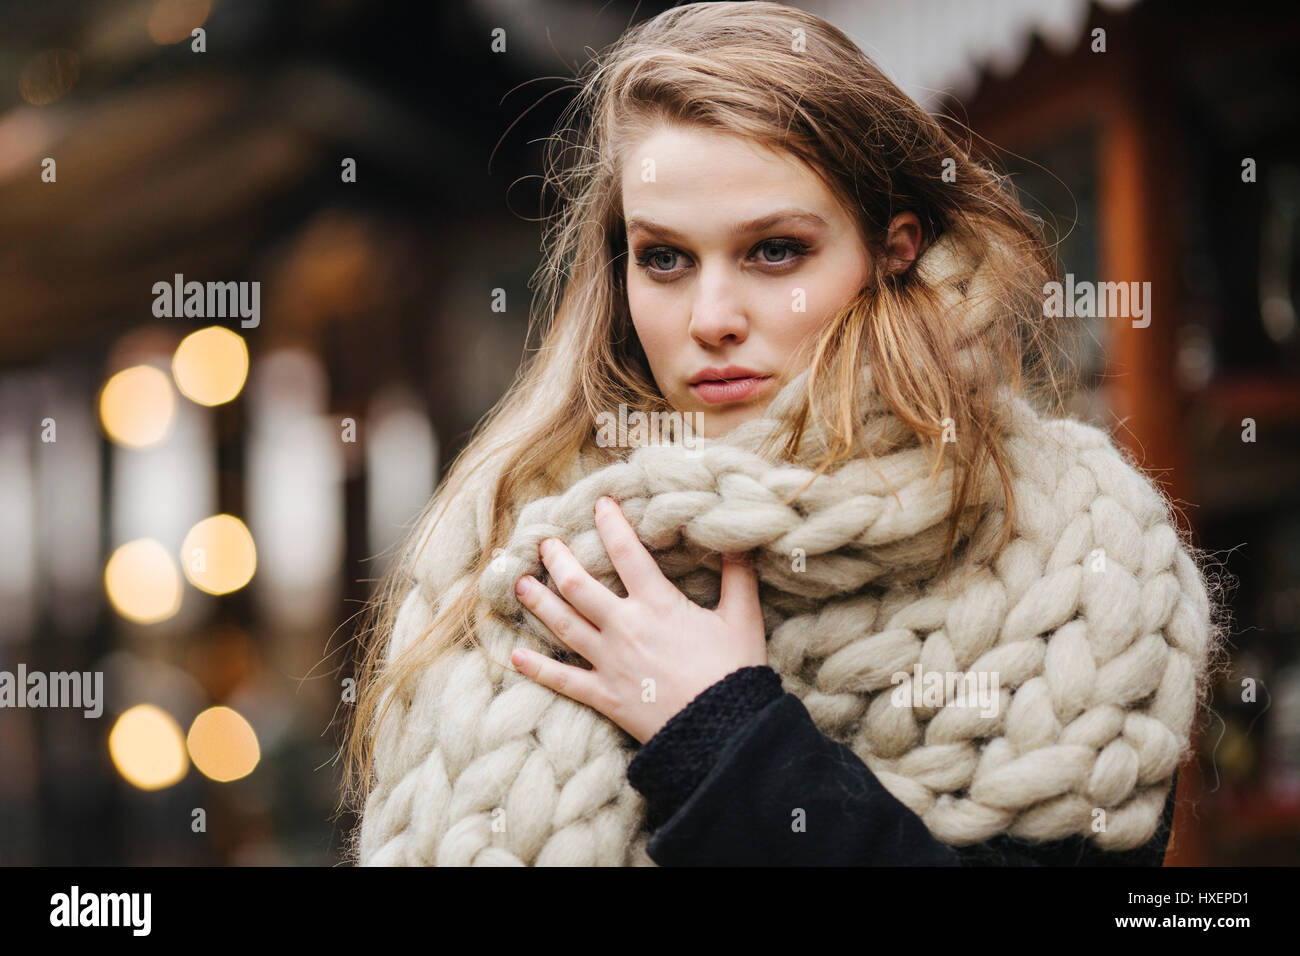 Girl with wool scarf - Stock Image